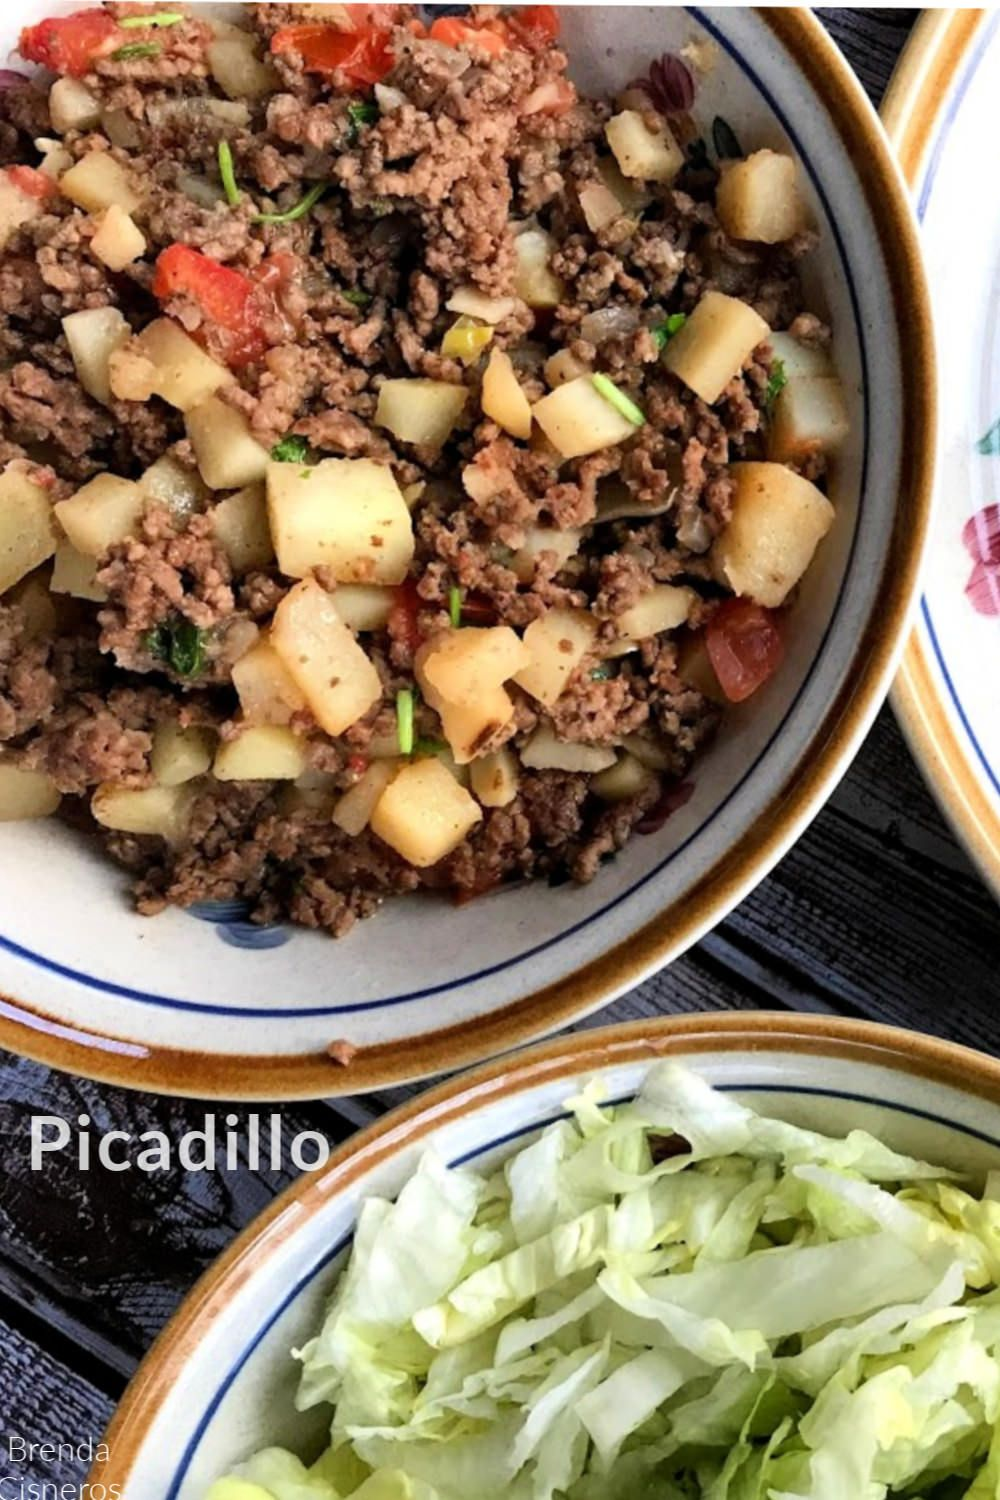 Mexican Picadillo Ground Beef Stew With Potatoes In 2020 Mexican Food Recipes Authentic Mexican Picadillo Ground Beef Stews